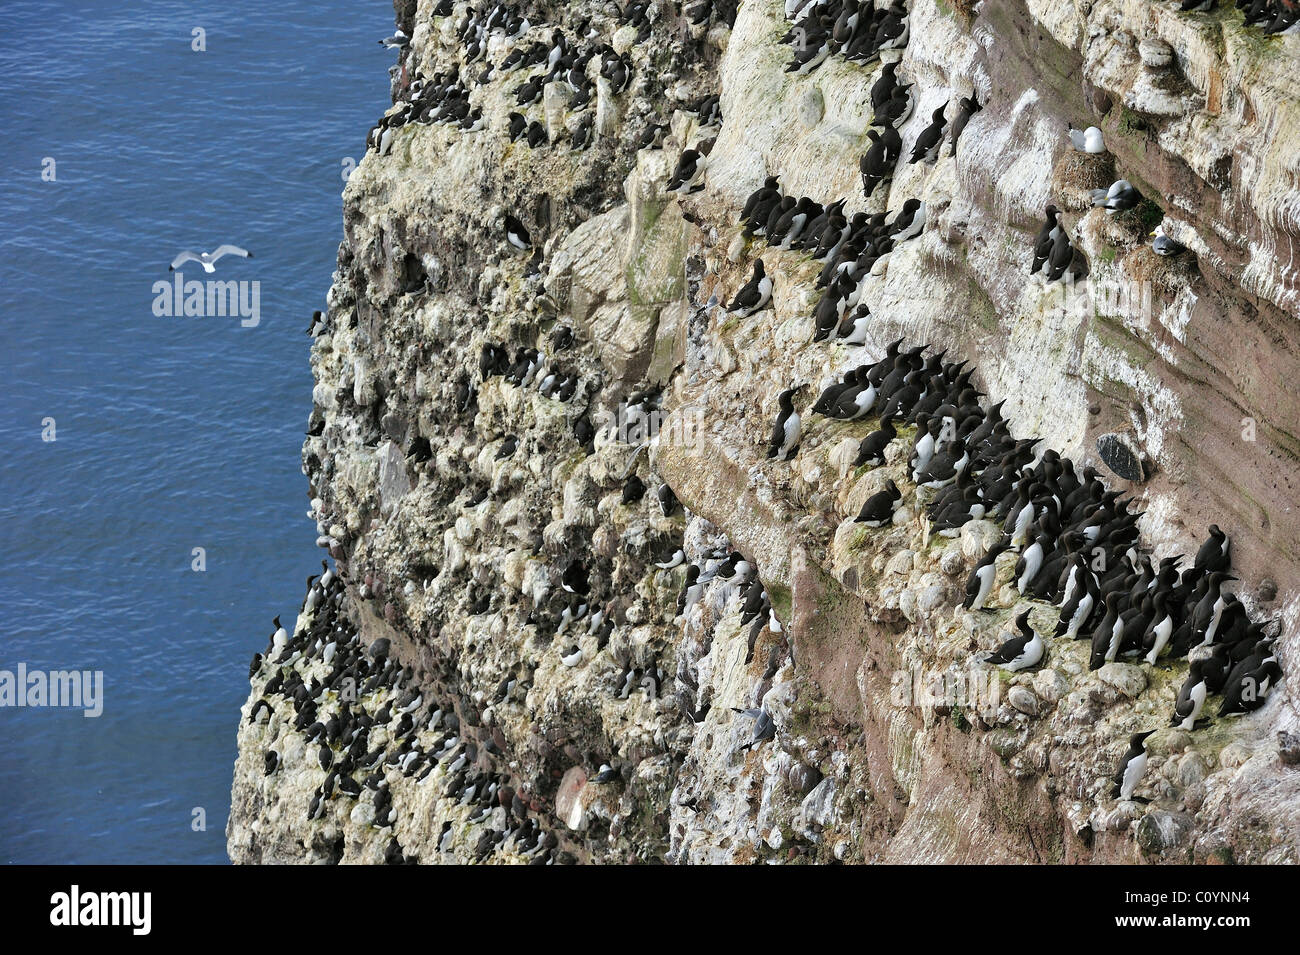 Common Murres / Common Guillemots (Uria aalge) nesting colony on cliffs at the Fowlsheugh nature reserve, Scotland, Stock Photo